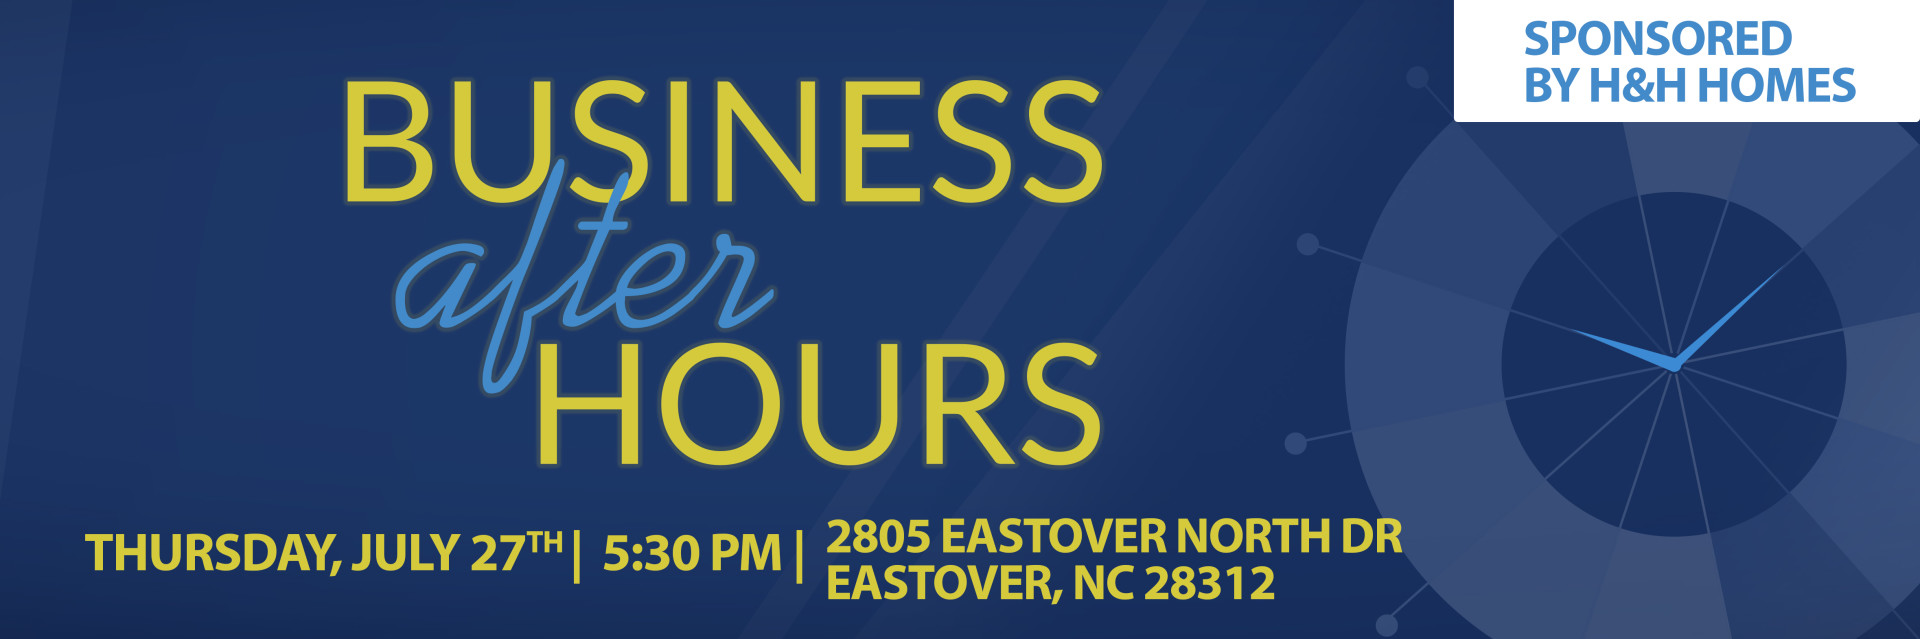 ChamberBanner_BusinessAfterHours_July-w1920.jpg